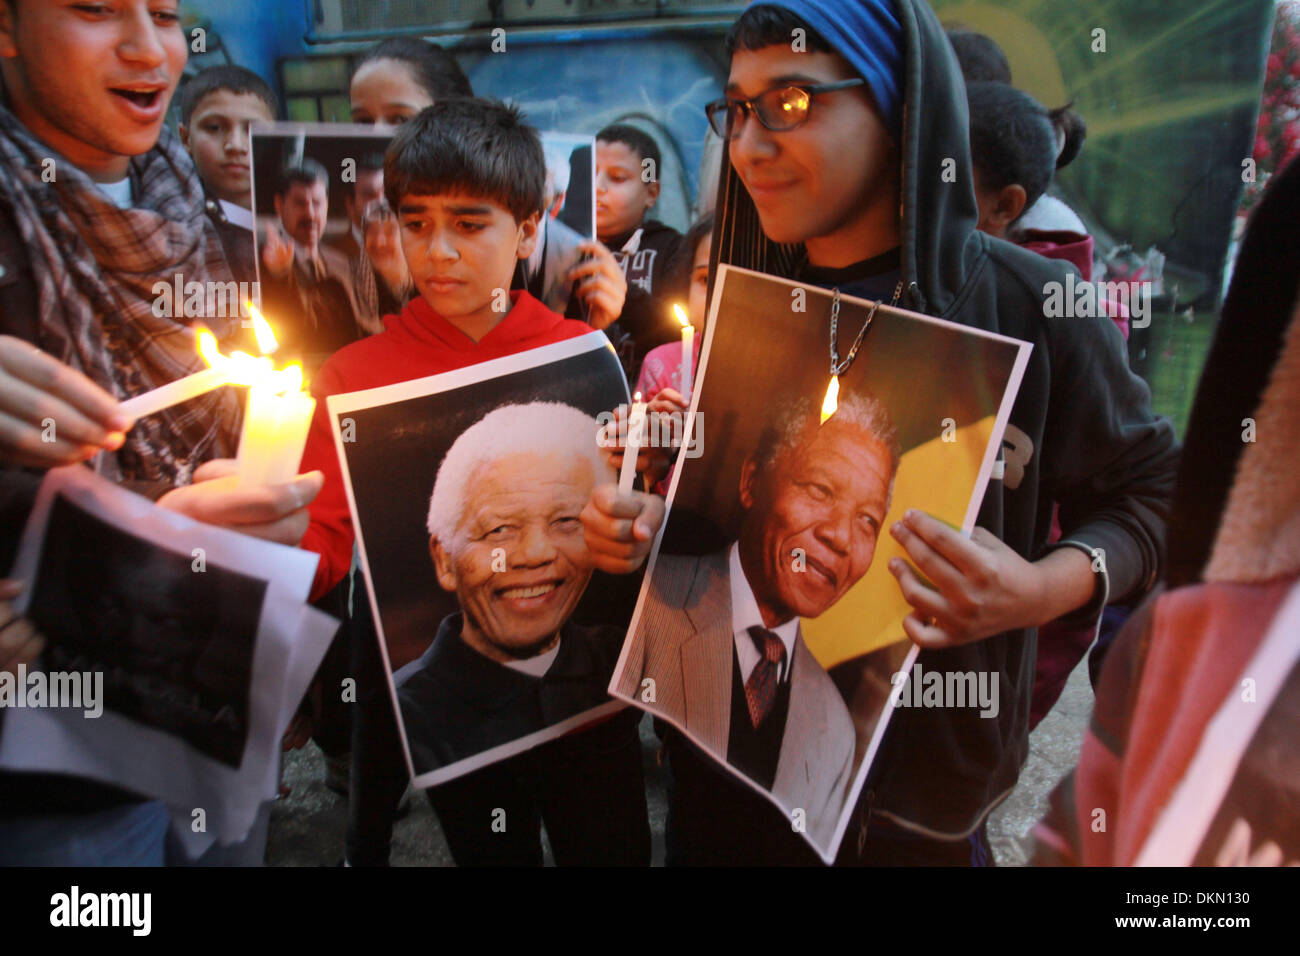 Nablus, West Bank, . 7th Dec, 2013. Palestinians light candles and hold pictures of former South African President Nelson Mandela in the West Bank refugee camp of Balata near Nablus. South African anti-apartheid hero Mandela died peacefully at home at the age of 95 on Thursday after months fighting a lung infection, leaving his nation and the world in mourning for a man revered as a moral giant. © Nedal Eshtayah/APA Images/ZUMAPRESS.com/Alamy Live News Credit:  ZUMA Press, Inc./Alamy Live News - Stock Image